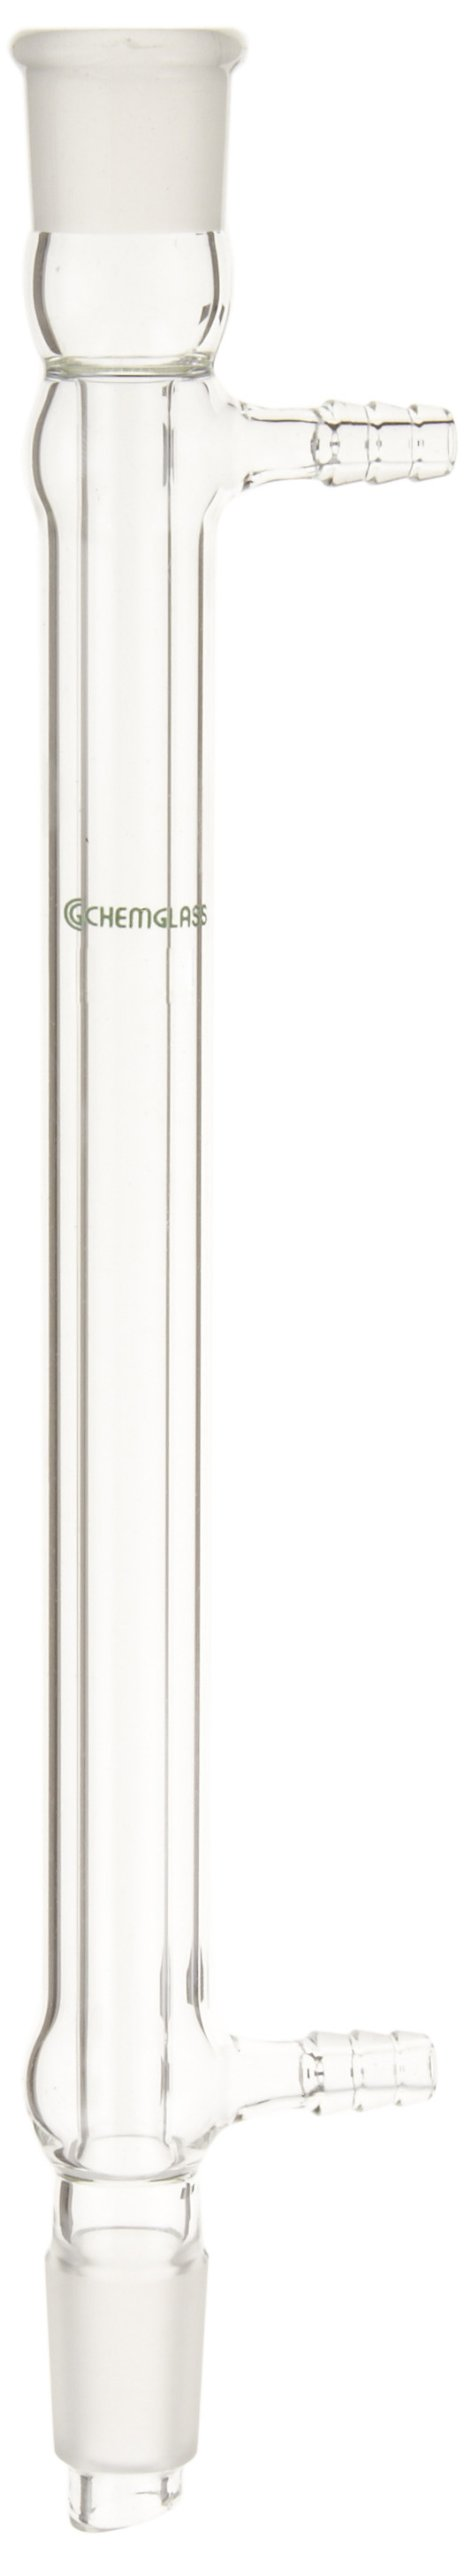 Chemglass CG-1220-24 Glass West Condenser, 200mm Jacket Length, 290mm Height, 19/22 Joint